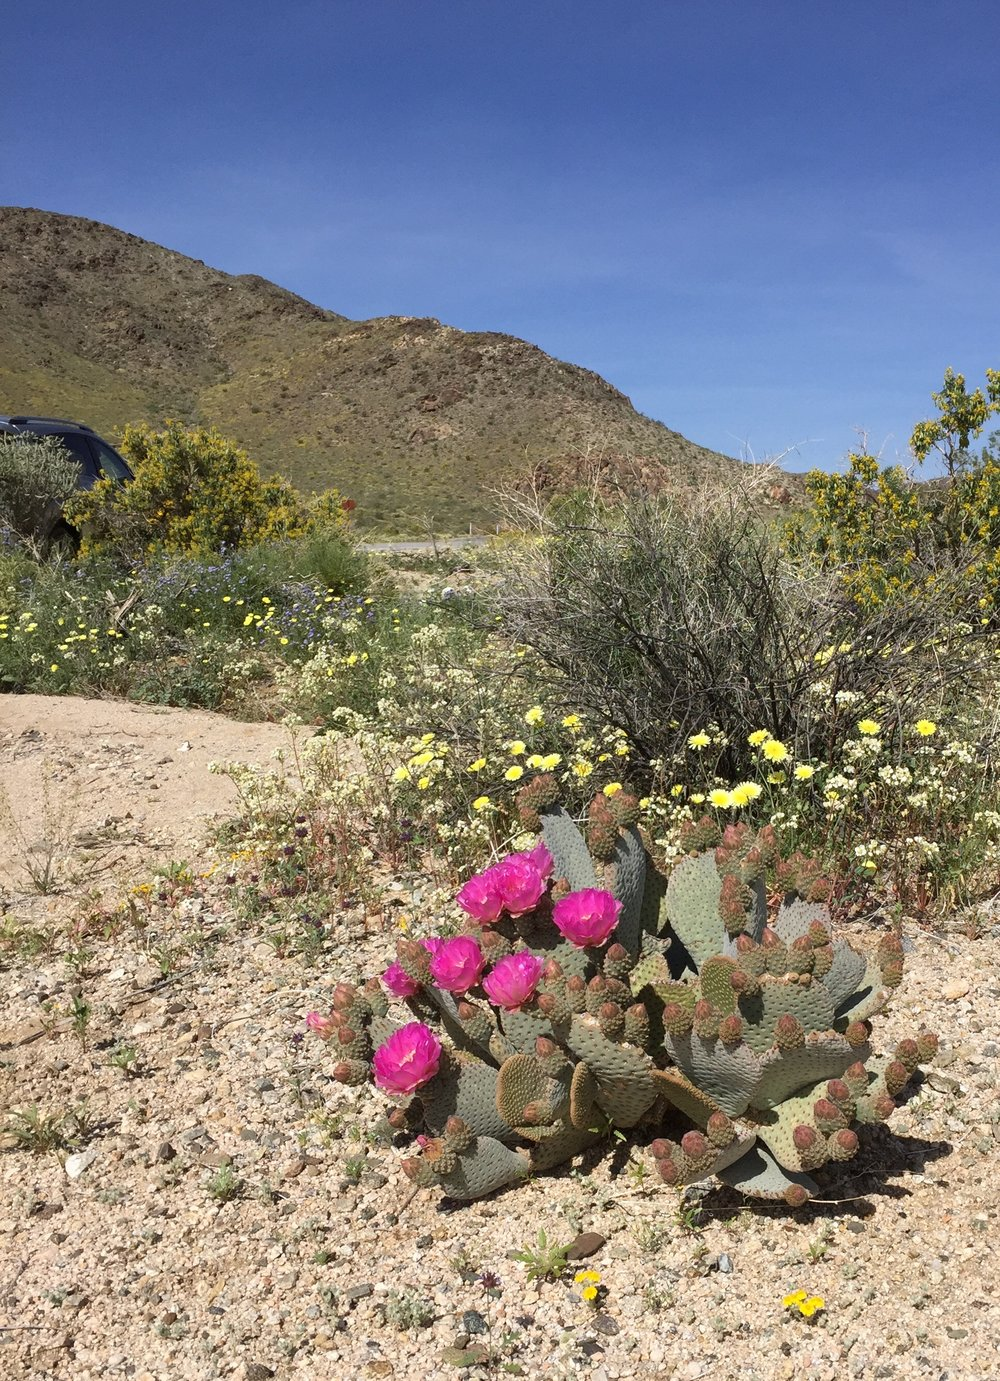 Pink beavertail cactus blooming among desert dandelions near Cholla Gardens, Joshua Tree National Park. Photo by Betsy Herbert, 2017.